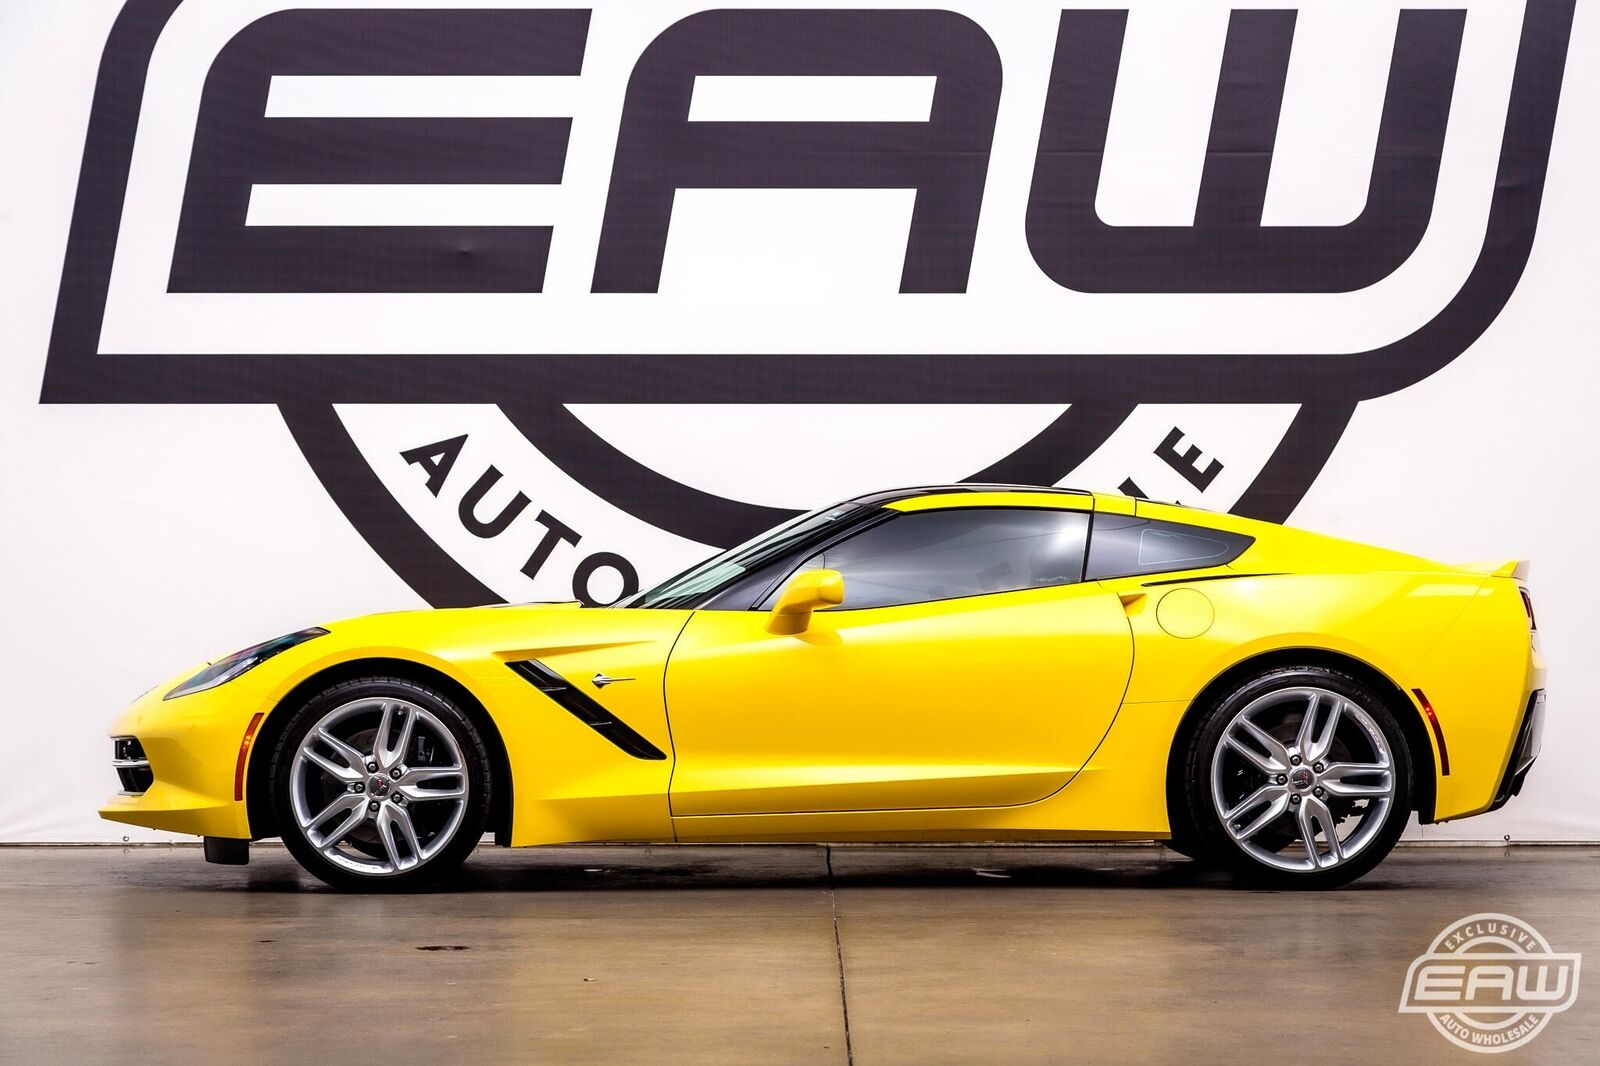 2016 Yellow Chevrolet Corvette Stingray 2LT | C7 Corvette Photo 3